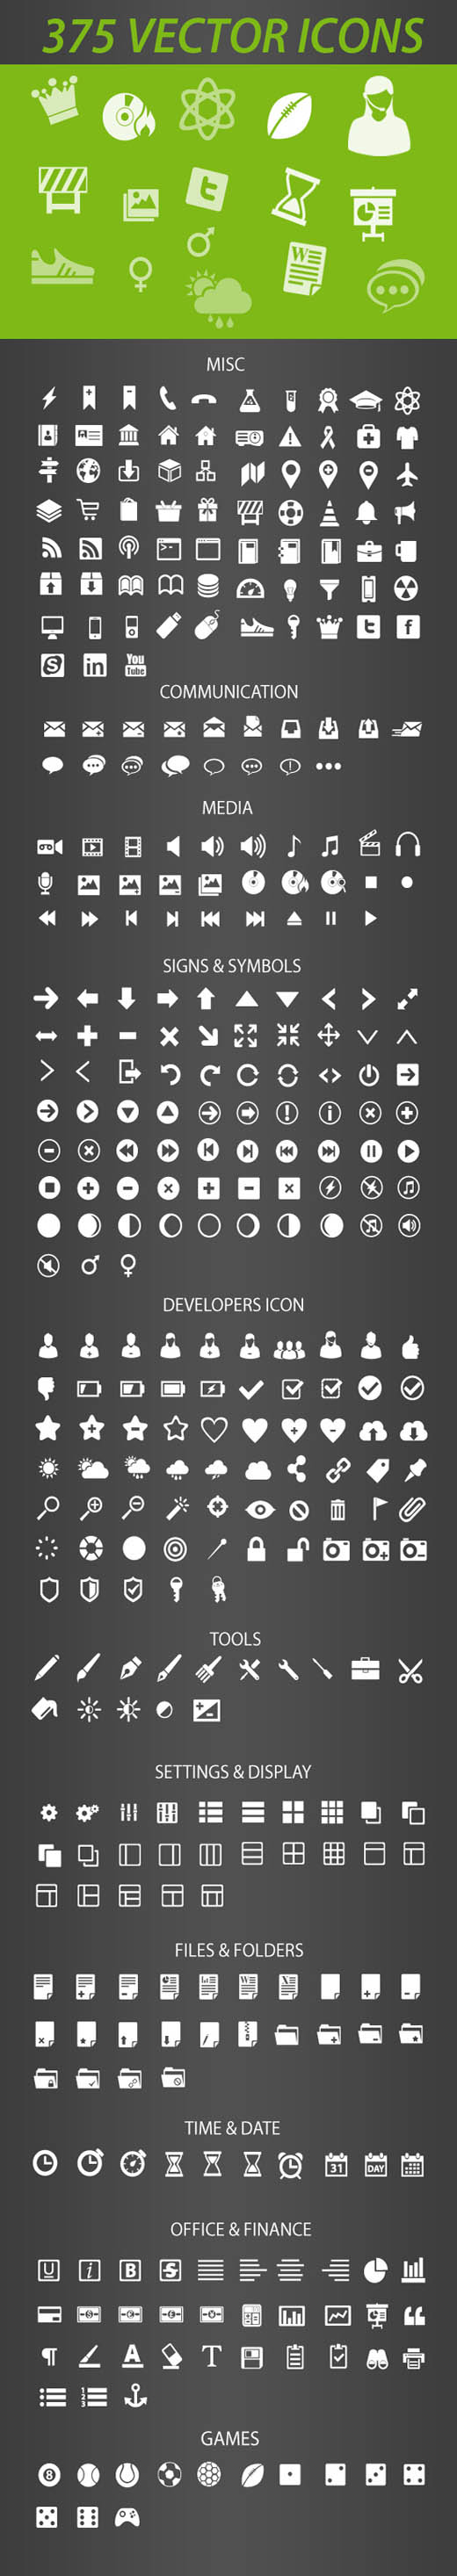 Free-Icon-Pack-375-Retina-Display-Ready-Icons